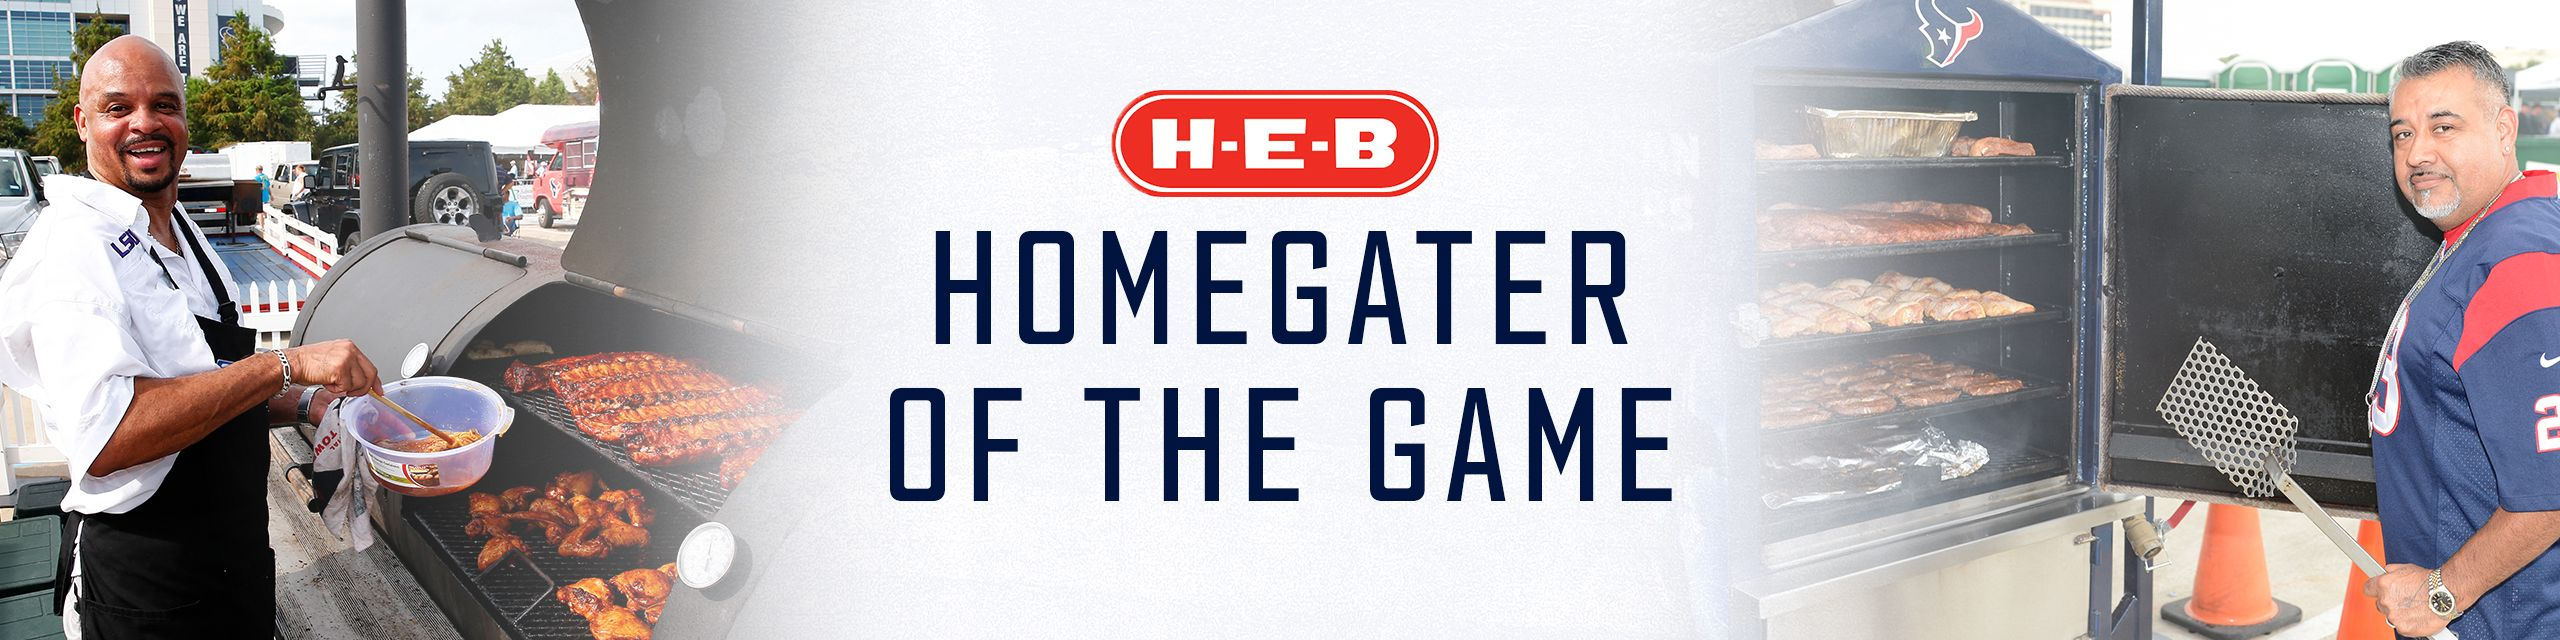 HEB Homegater of the Game